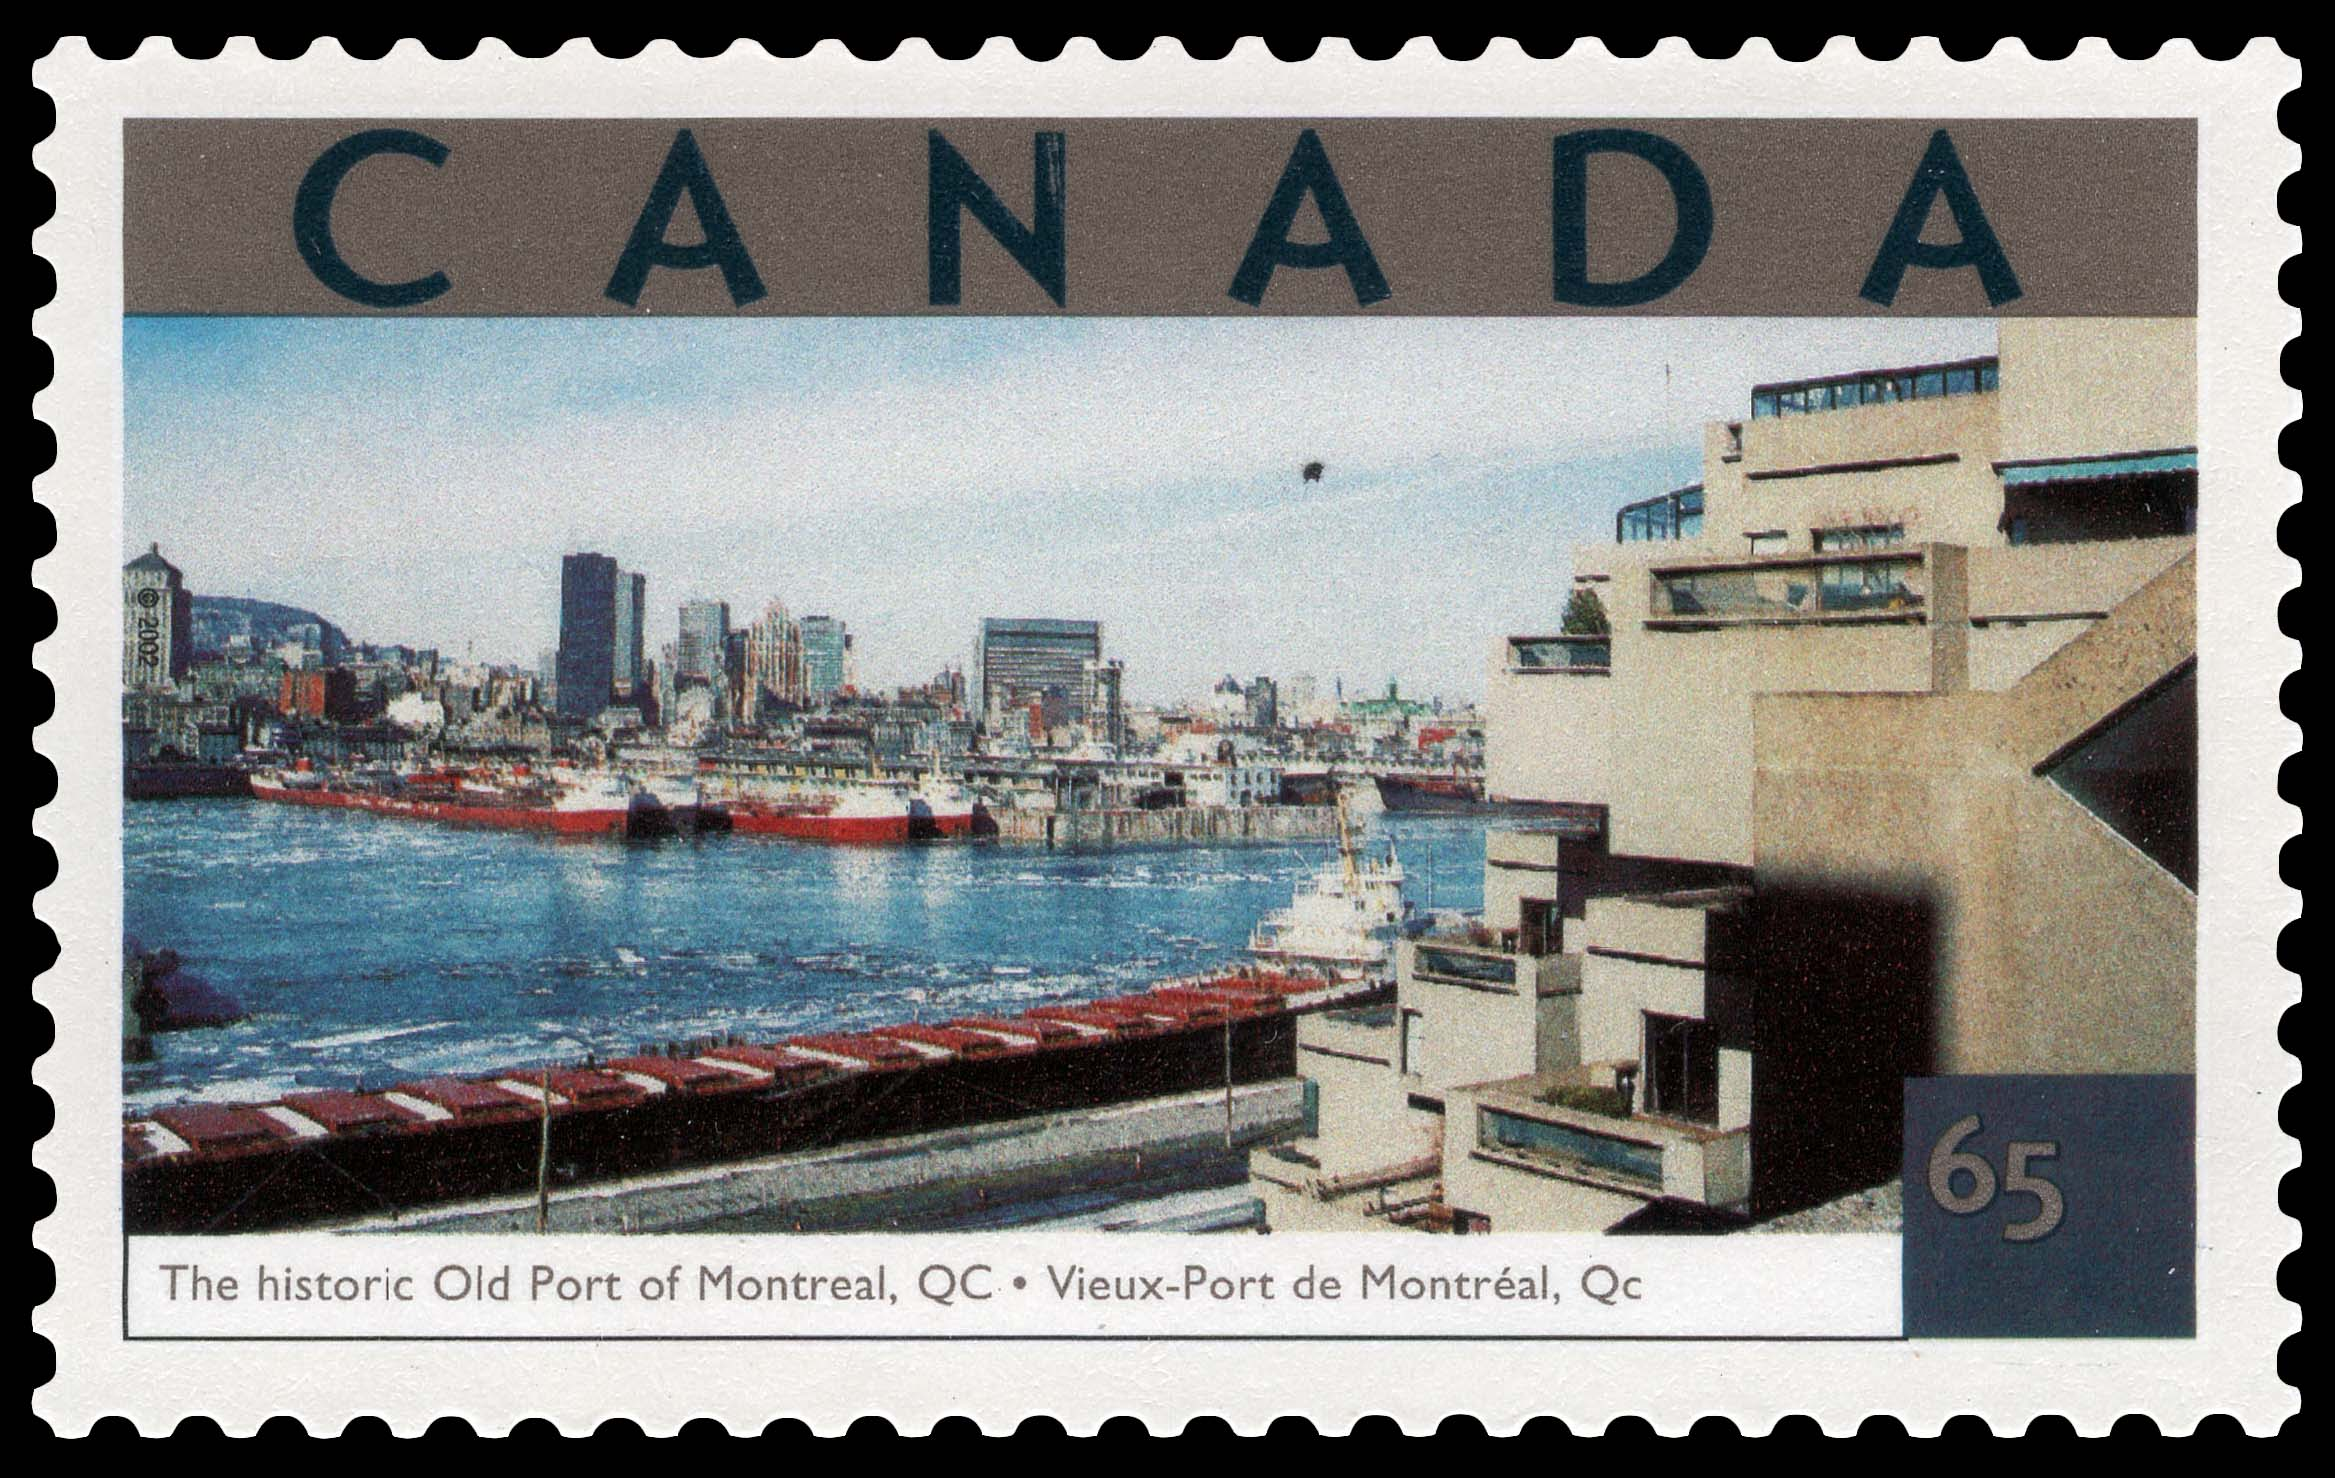 The Historic Old Port of Montreal, Quebec Canada Postage Stamp